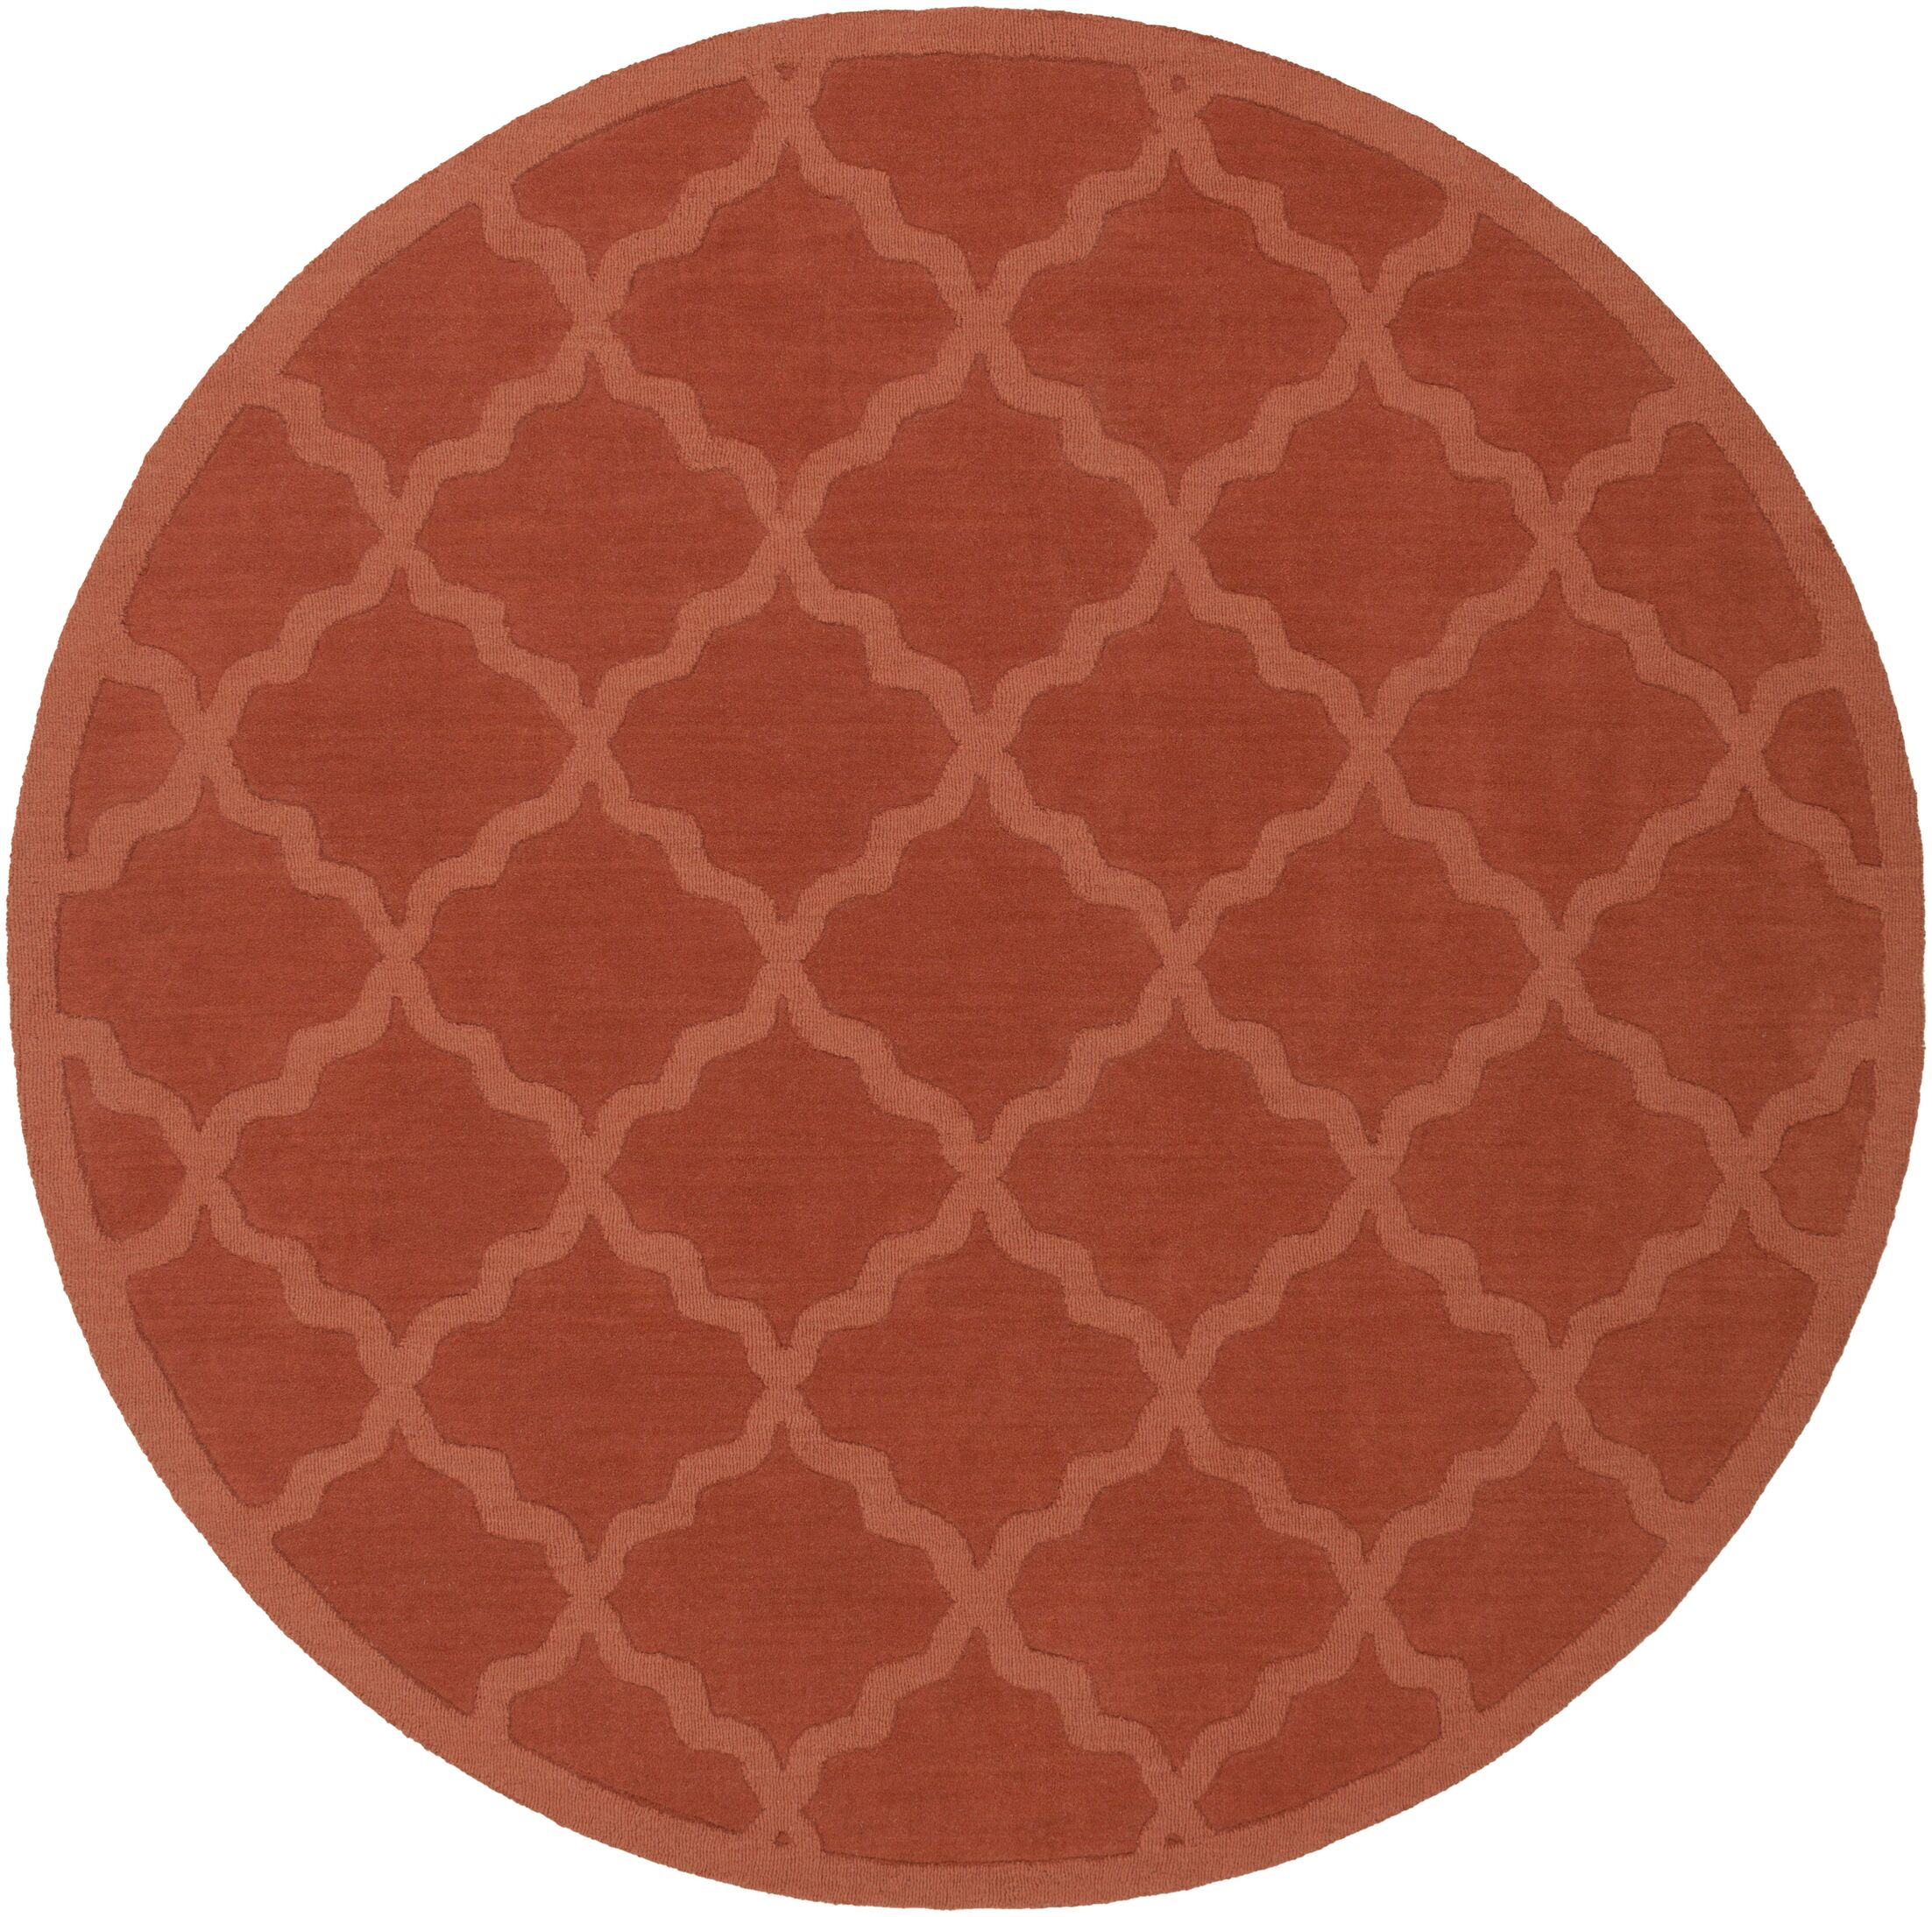 Blankenship Red Geometric Abbey Area Rug Rug Size: Round 7'9